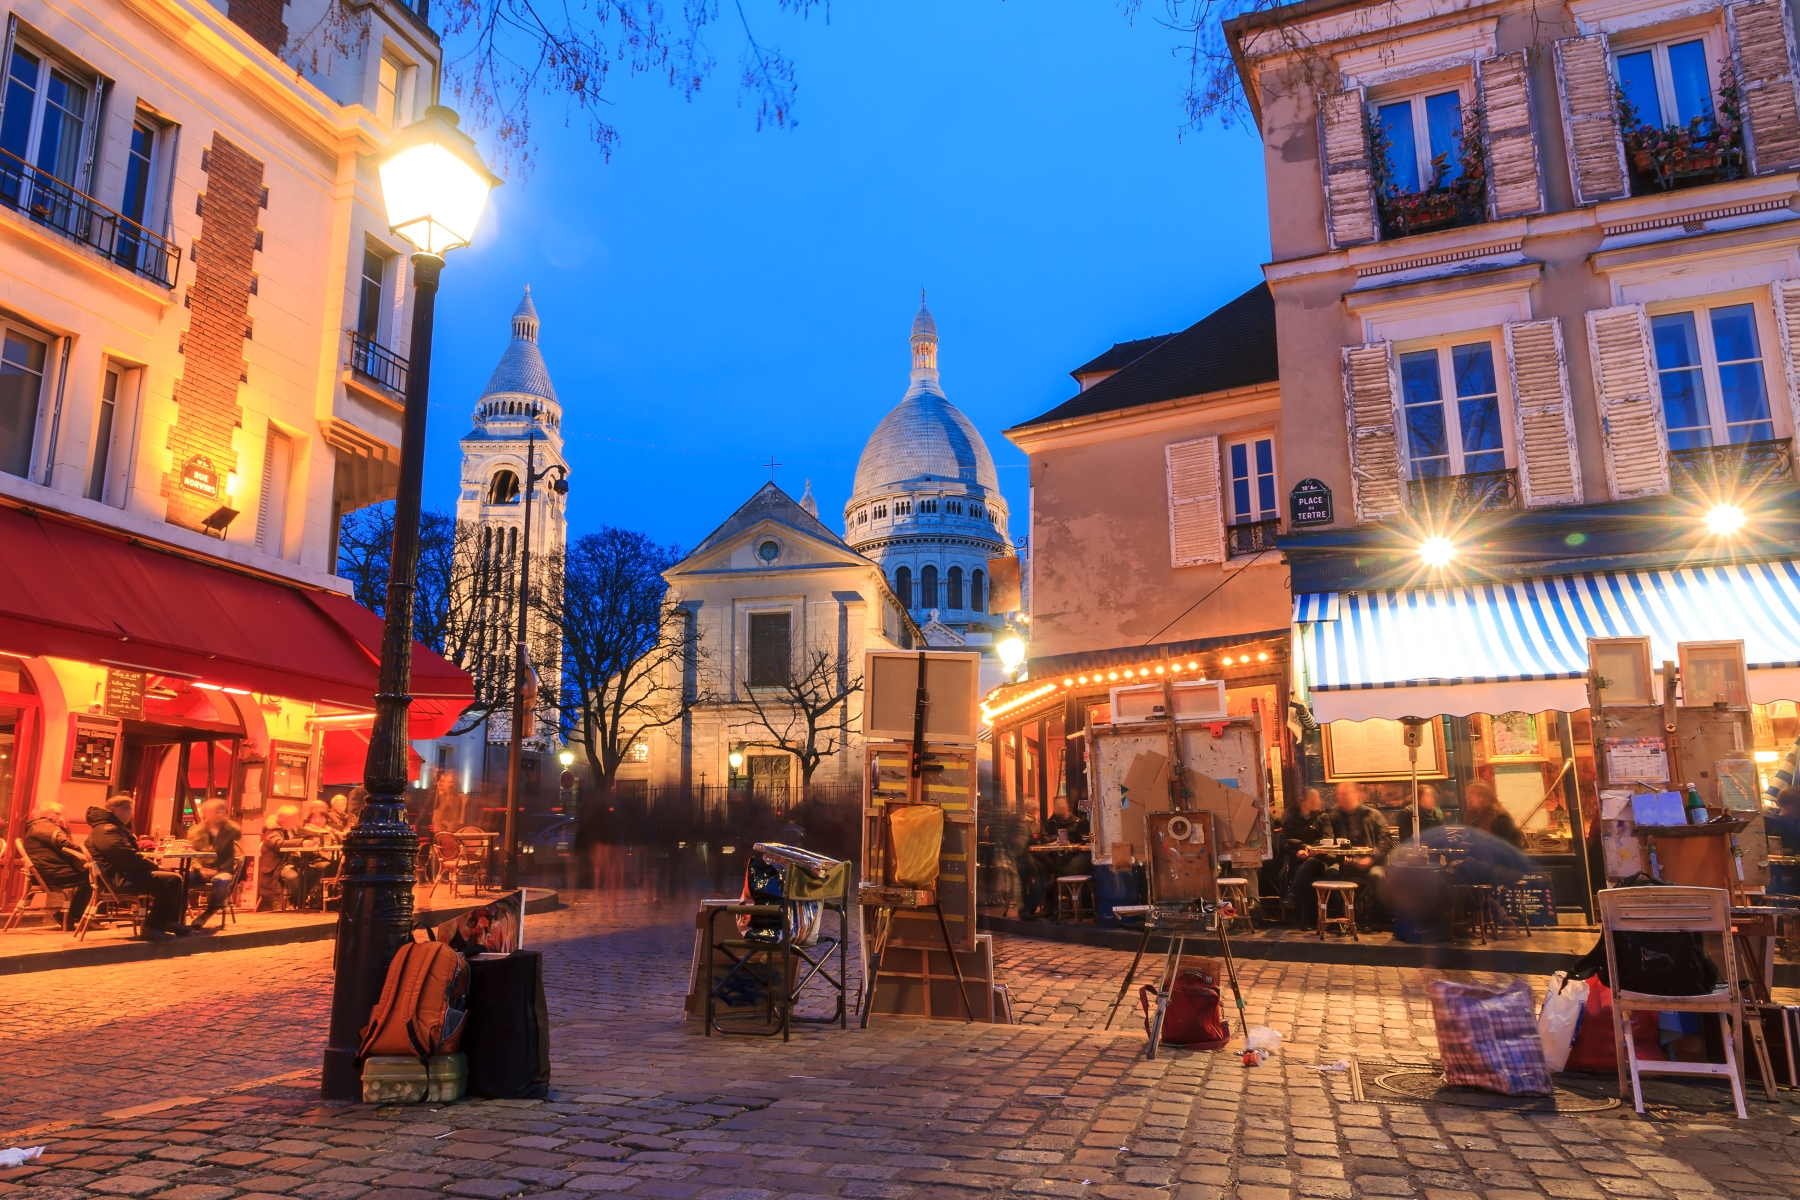 View of the Place du Tertre and the Sacre-Coeur in Paris.